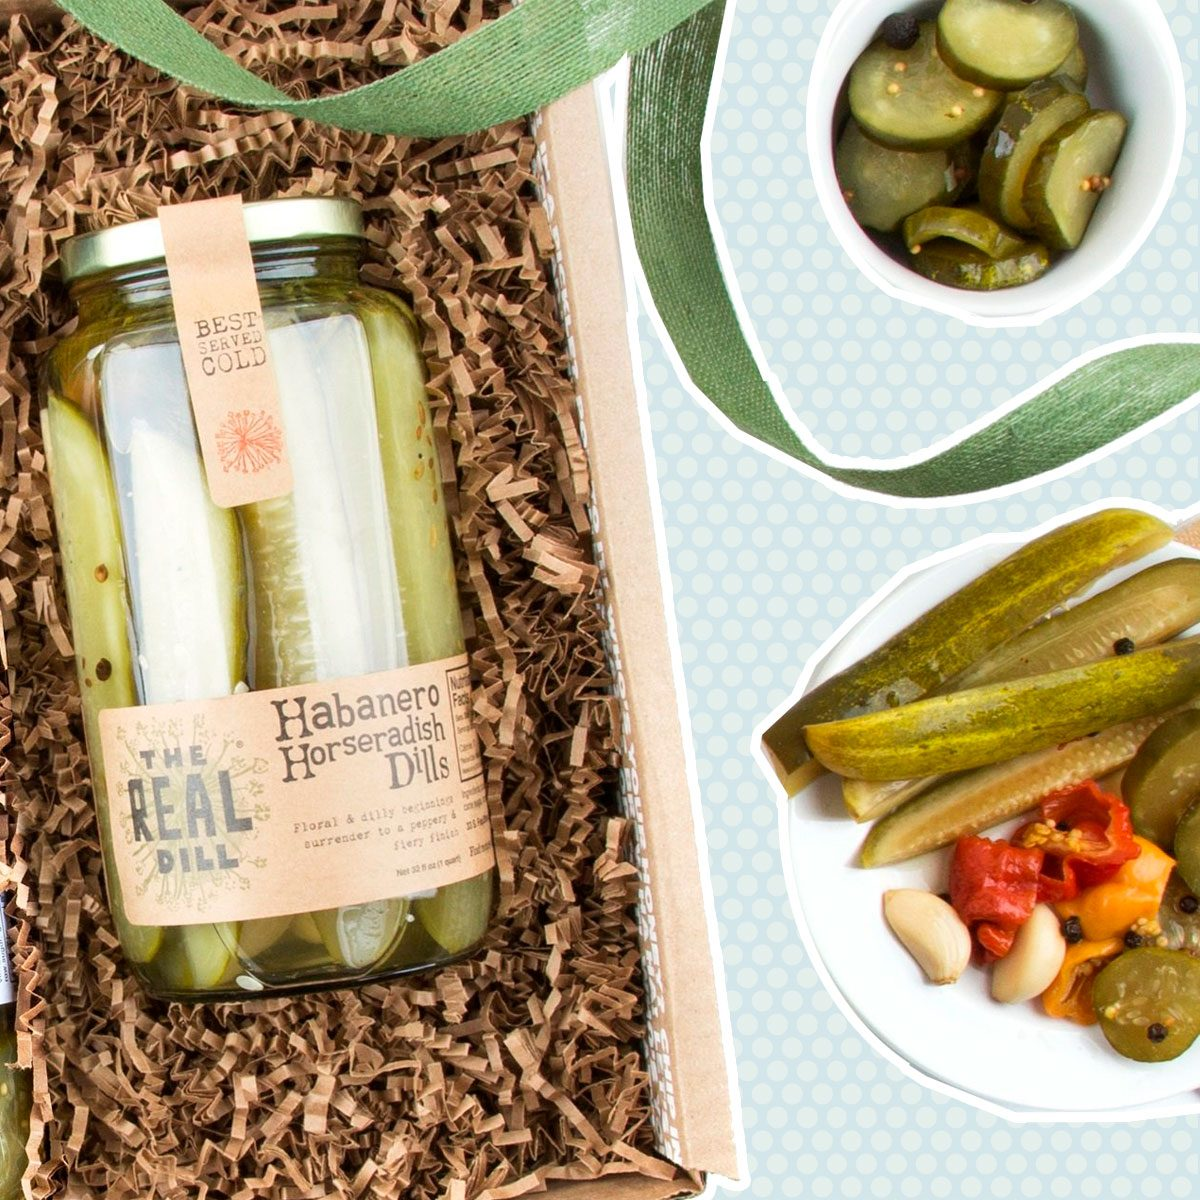 Pickle-of-the-Month Subscription